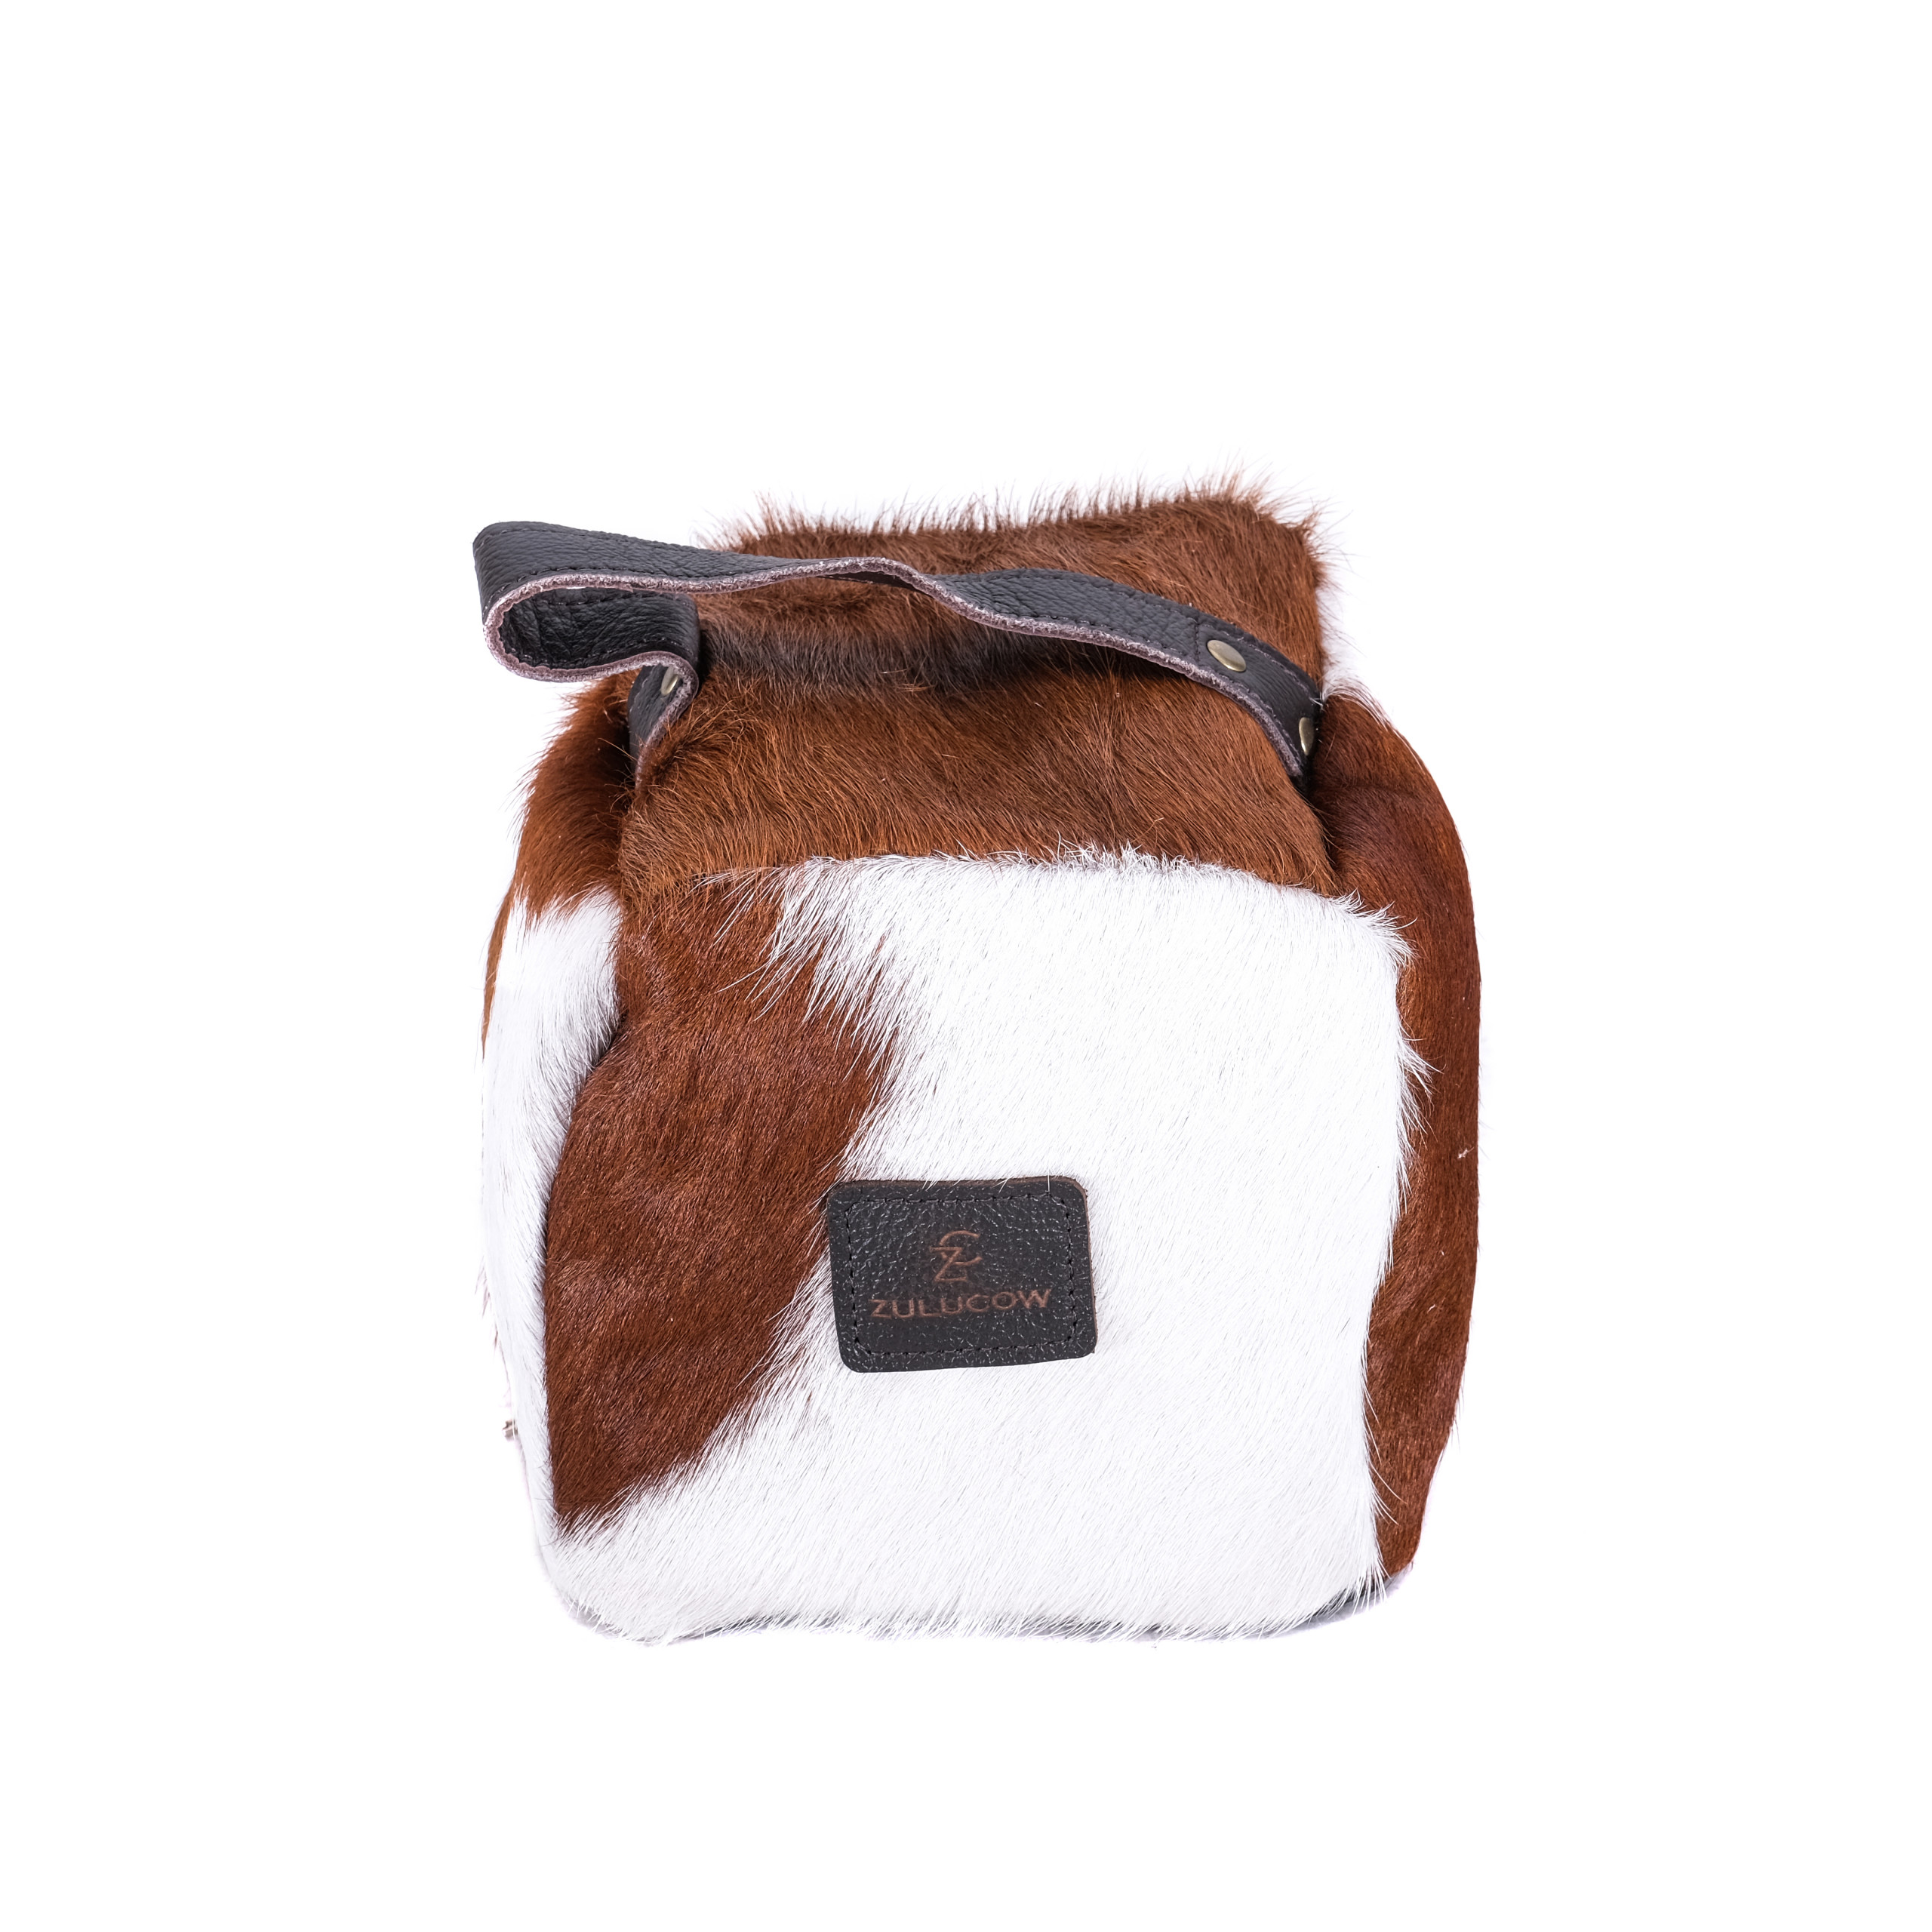 brown and white, cowhide door stop, animal print, sustainable, ethical, handmade, leather door stop